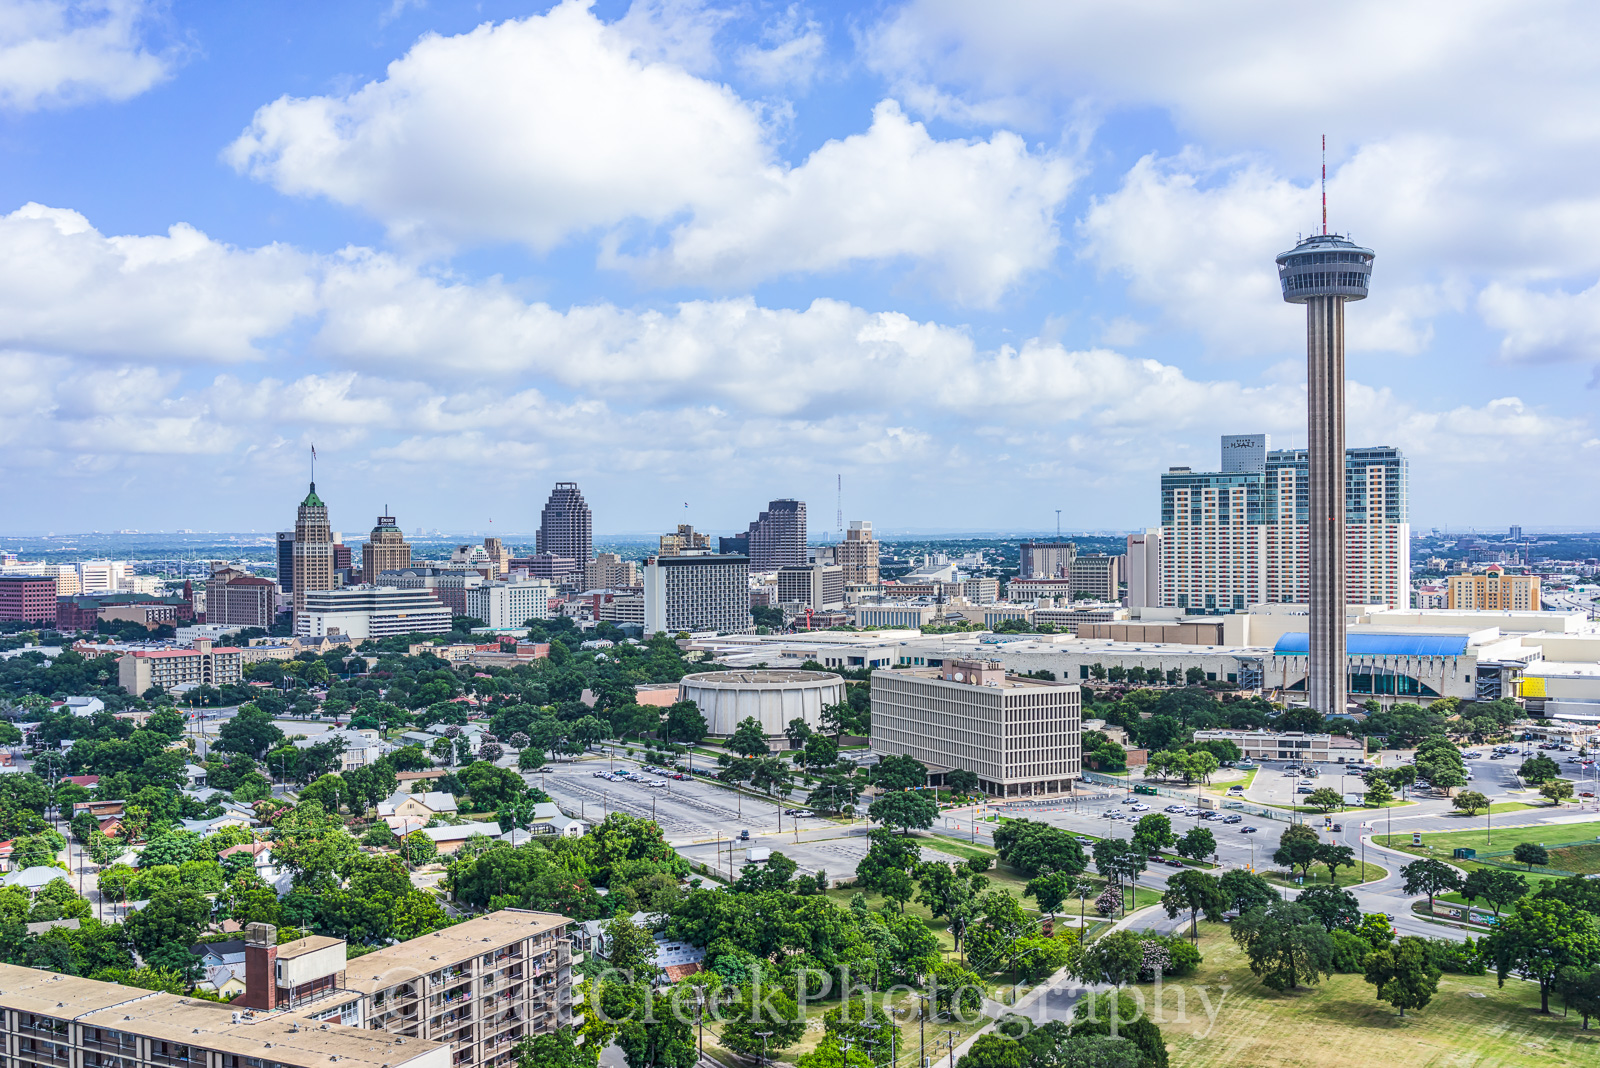 Bank of Americas, Convention Center, Grand Hyatt, Hemisphere, Marriott, River Walk, San Antonio, Tower Life building, Tower of Americas, Weston Center, aerial, city, day, cityscape, downtown, skyline,, photo